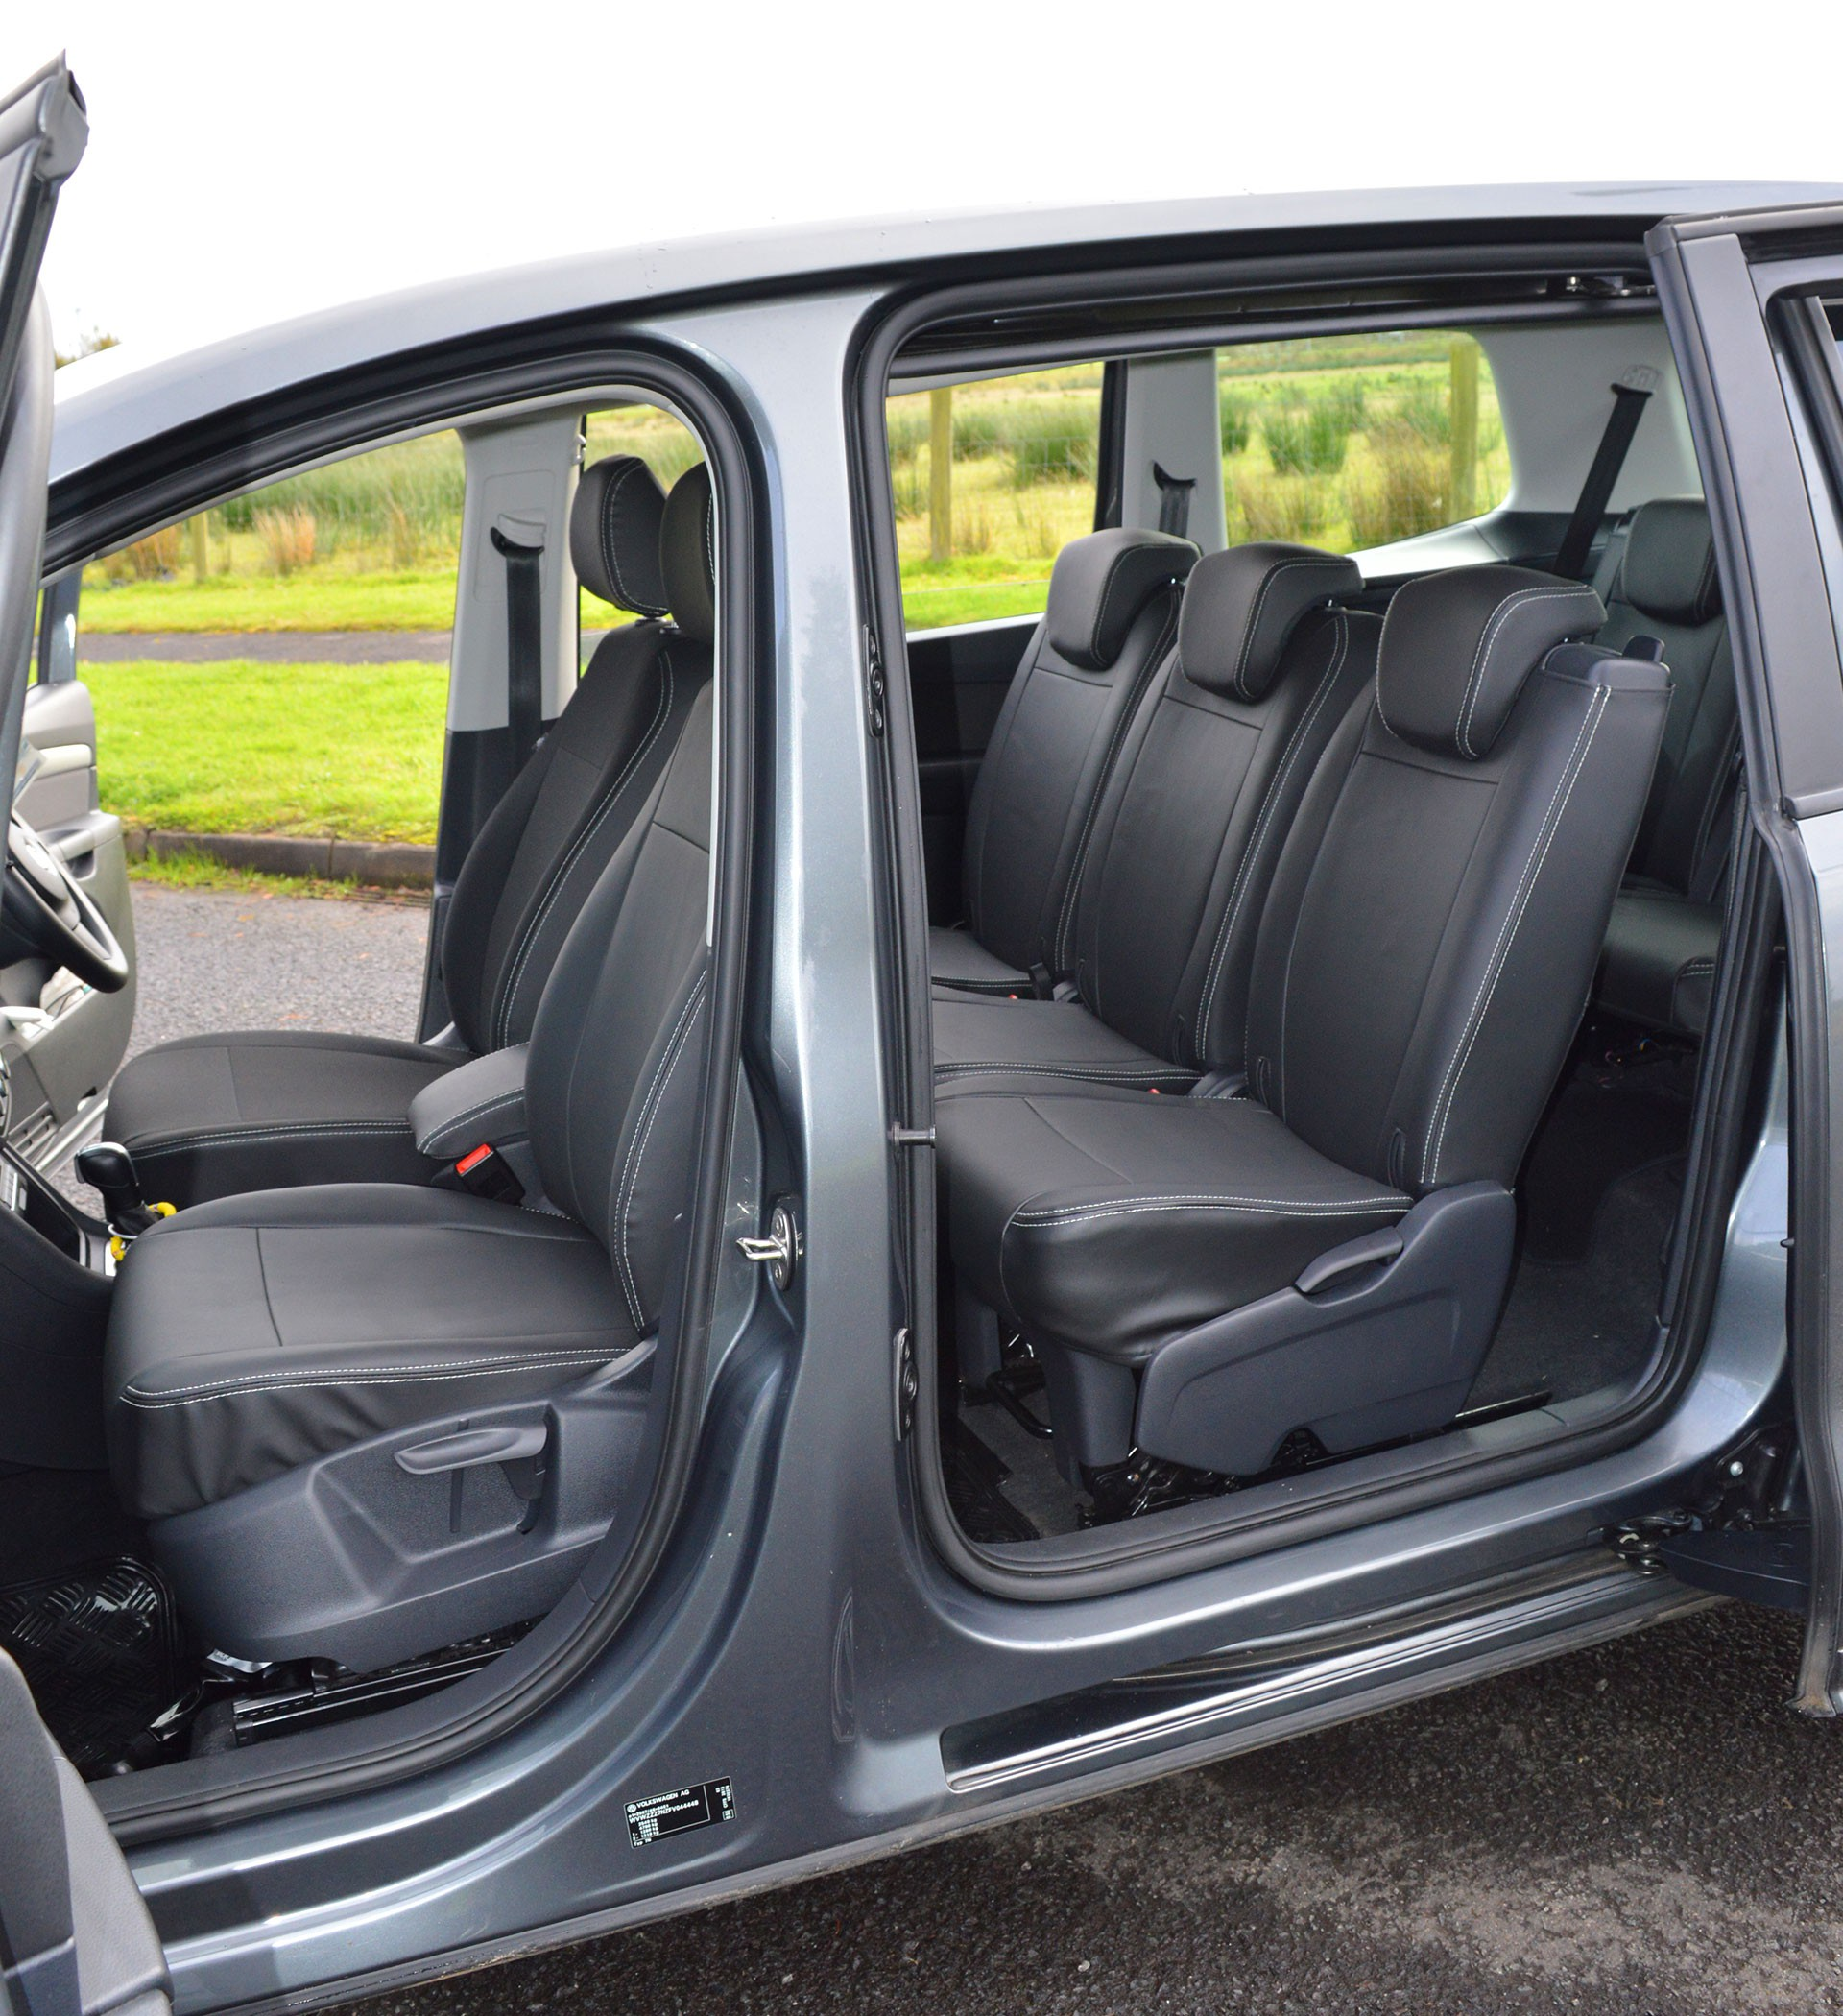 VW Sharan Waterproof Leather Look Tailored Seat Covers